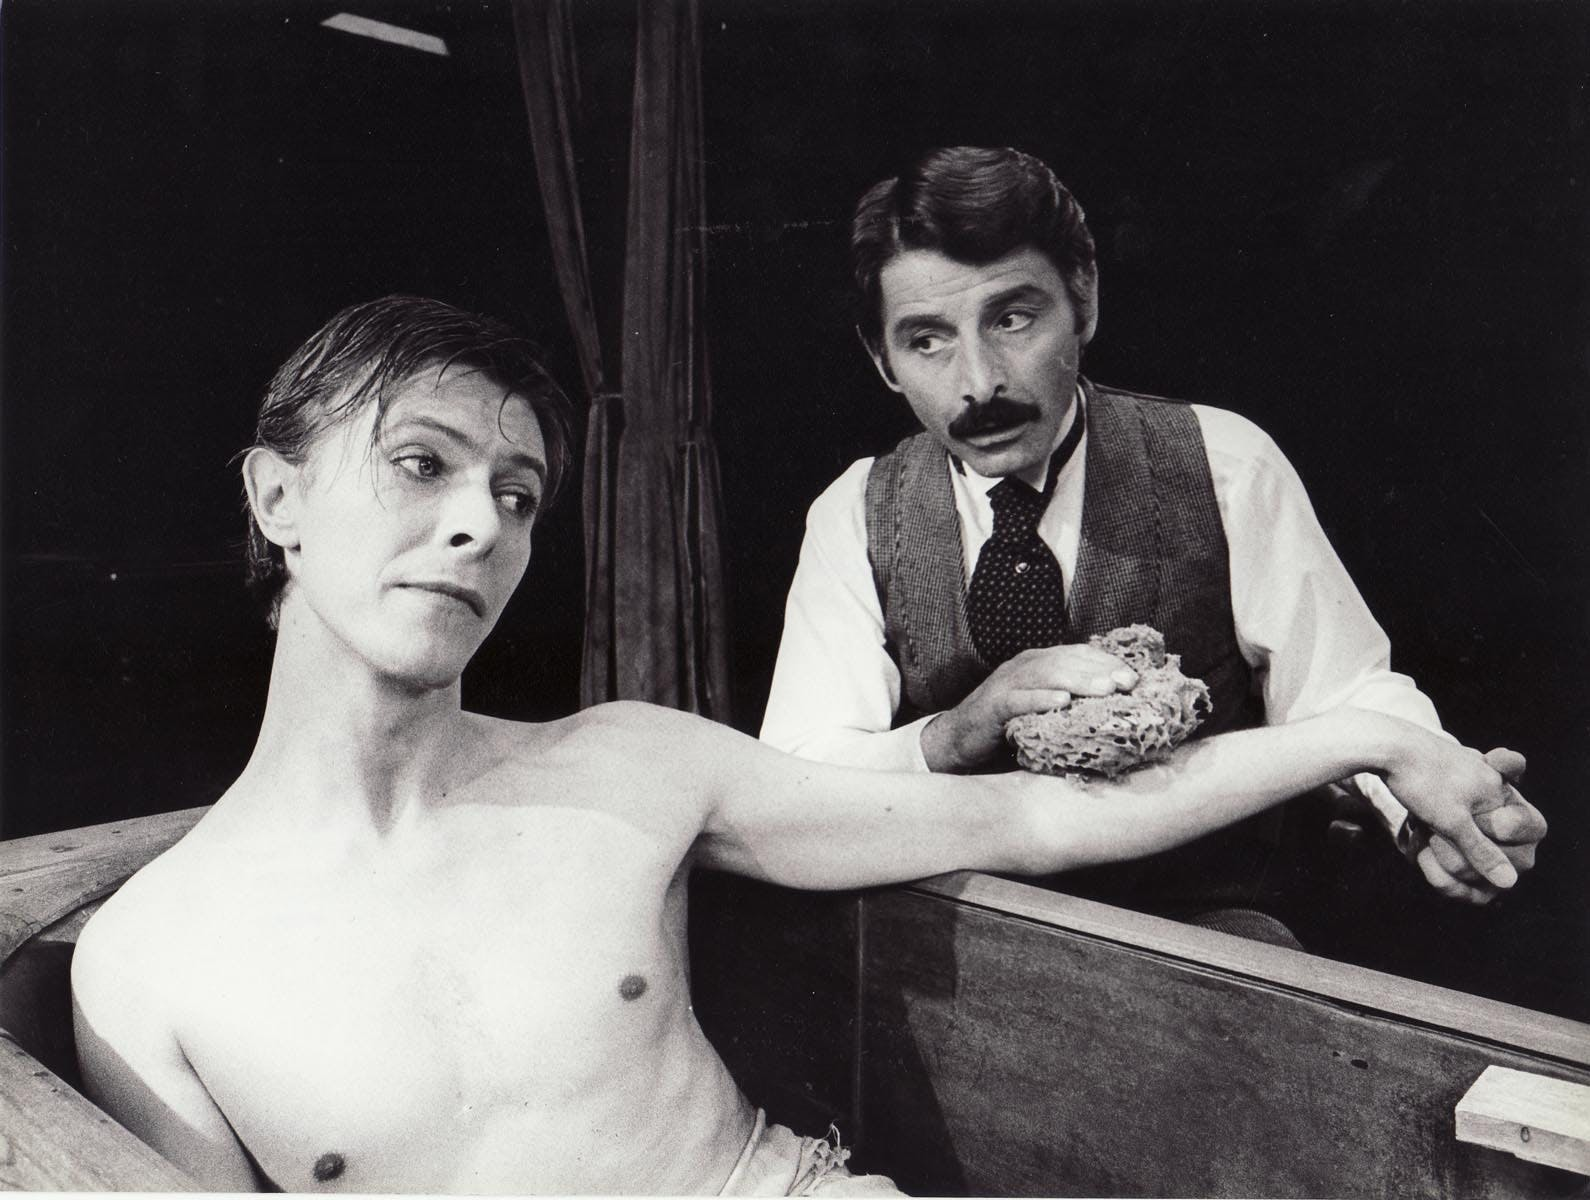 WHEN DAVID BOWIE PLAYED THE ELEPHANT MAN ON BROADWAY IN 1979